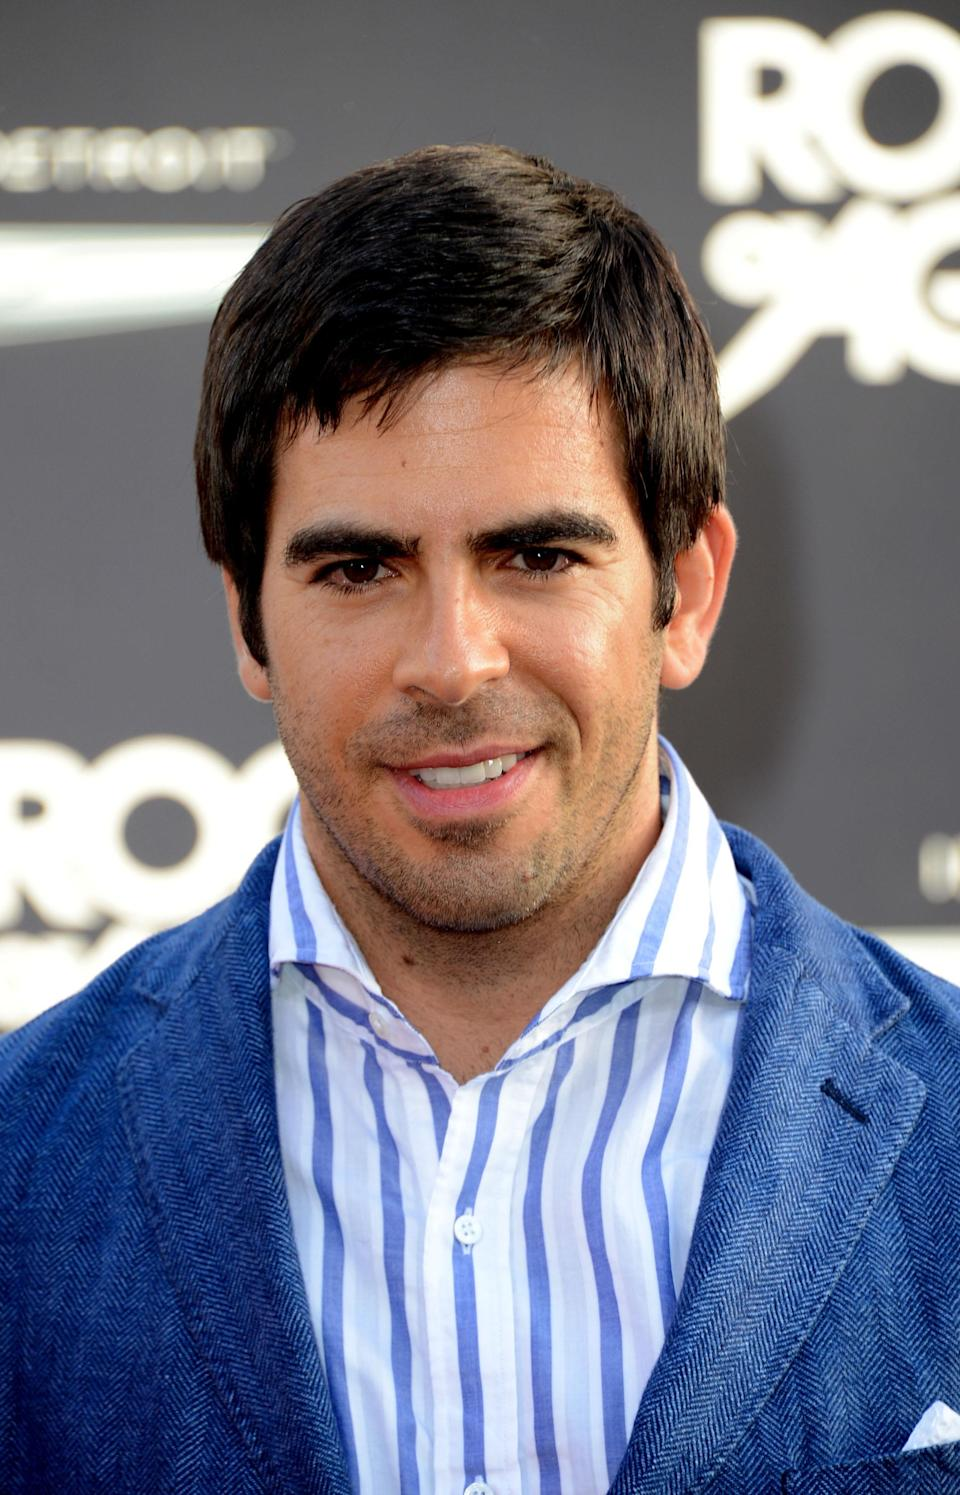 "<b>Eli Roth:</b> ""Thinking of everyone in Aurora. Too upsetting for words."" (Photo by Frazer Harrison/Getty Images)"